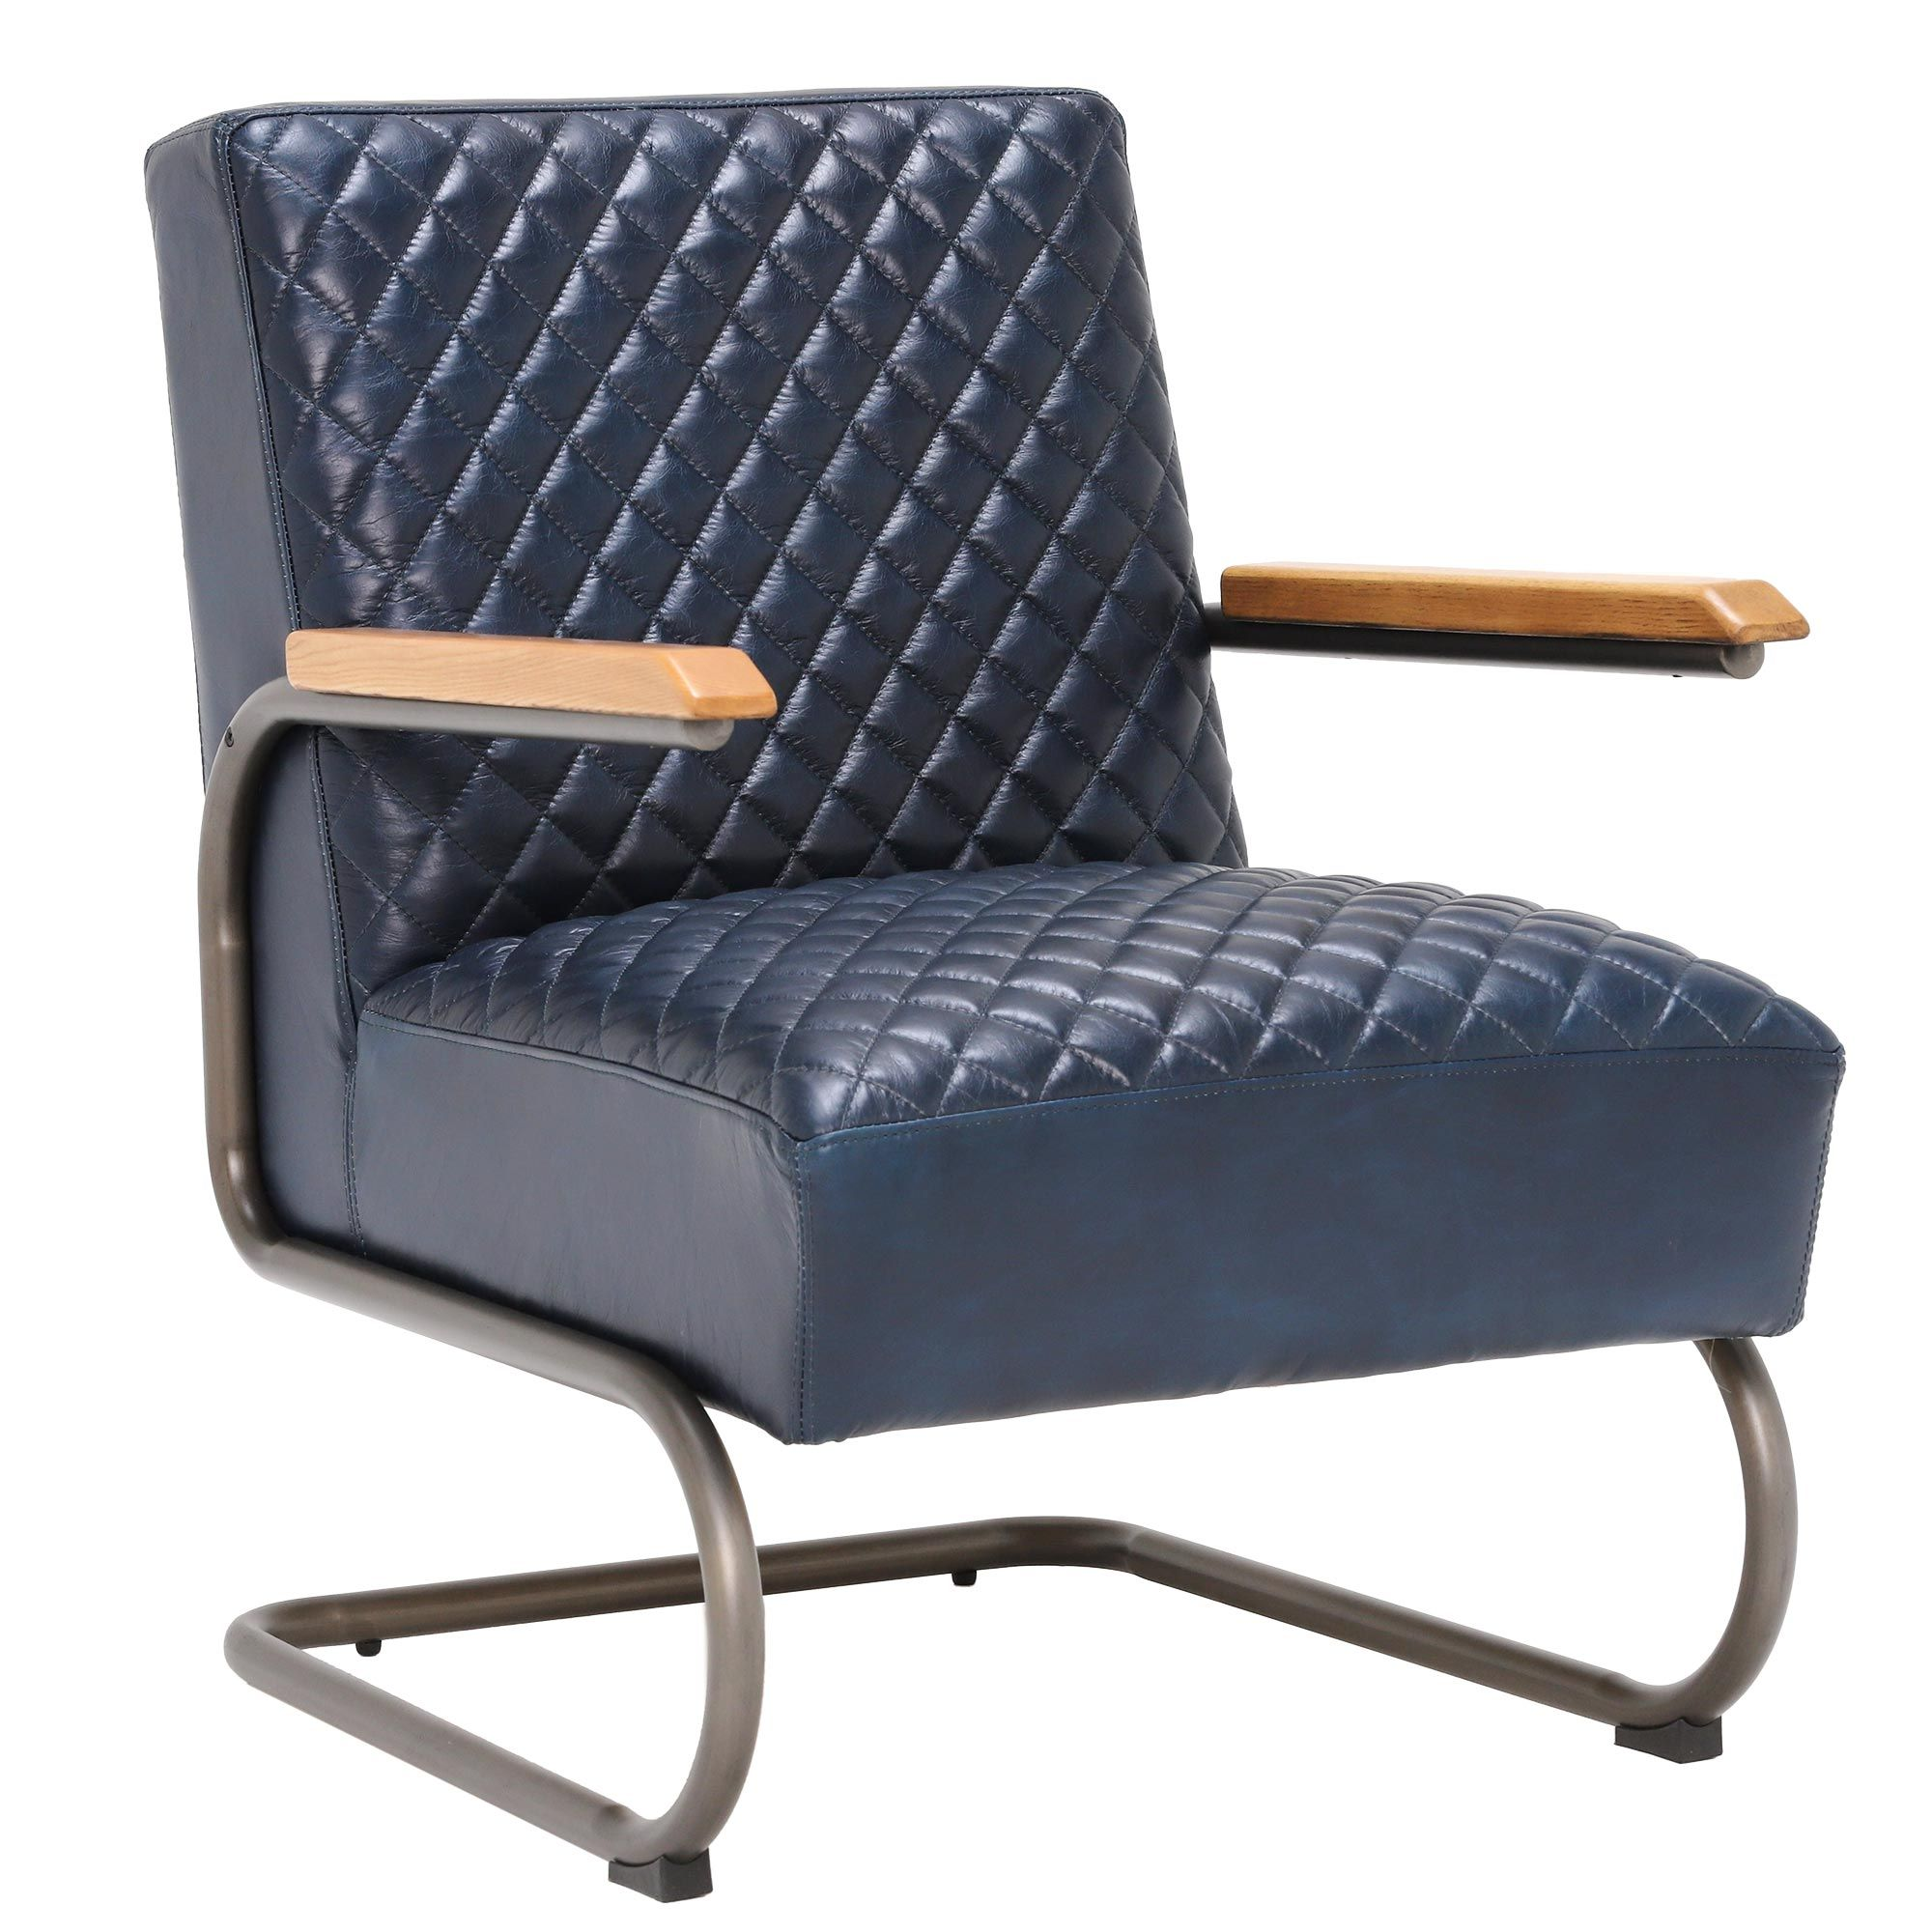 Gisbourne Chair Chairs Living Room Blue Leather Chair Chair